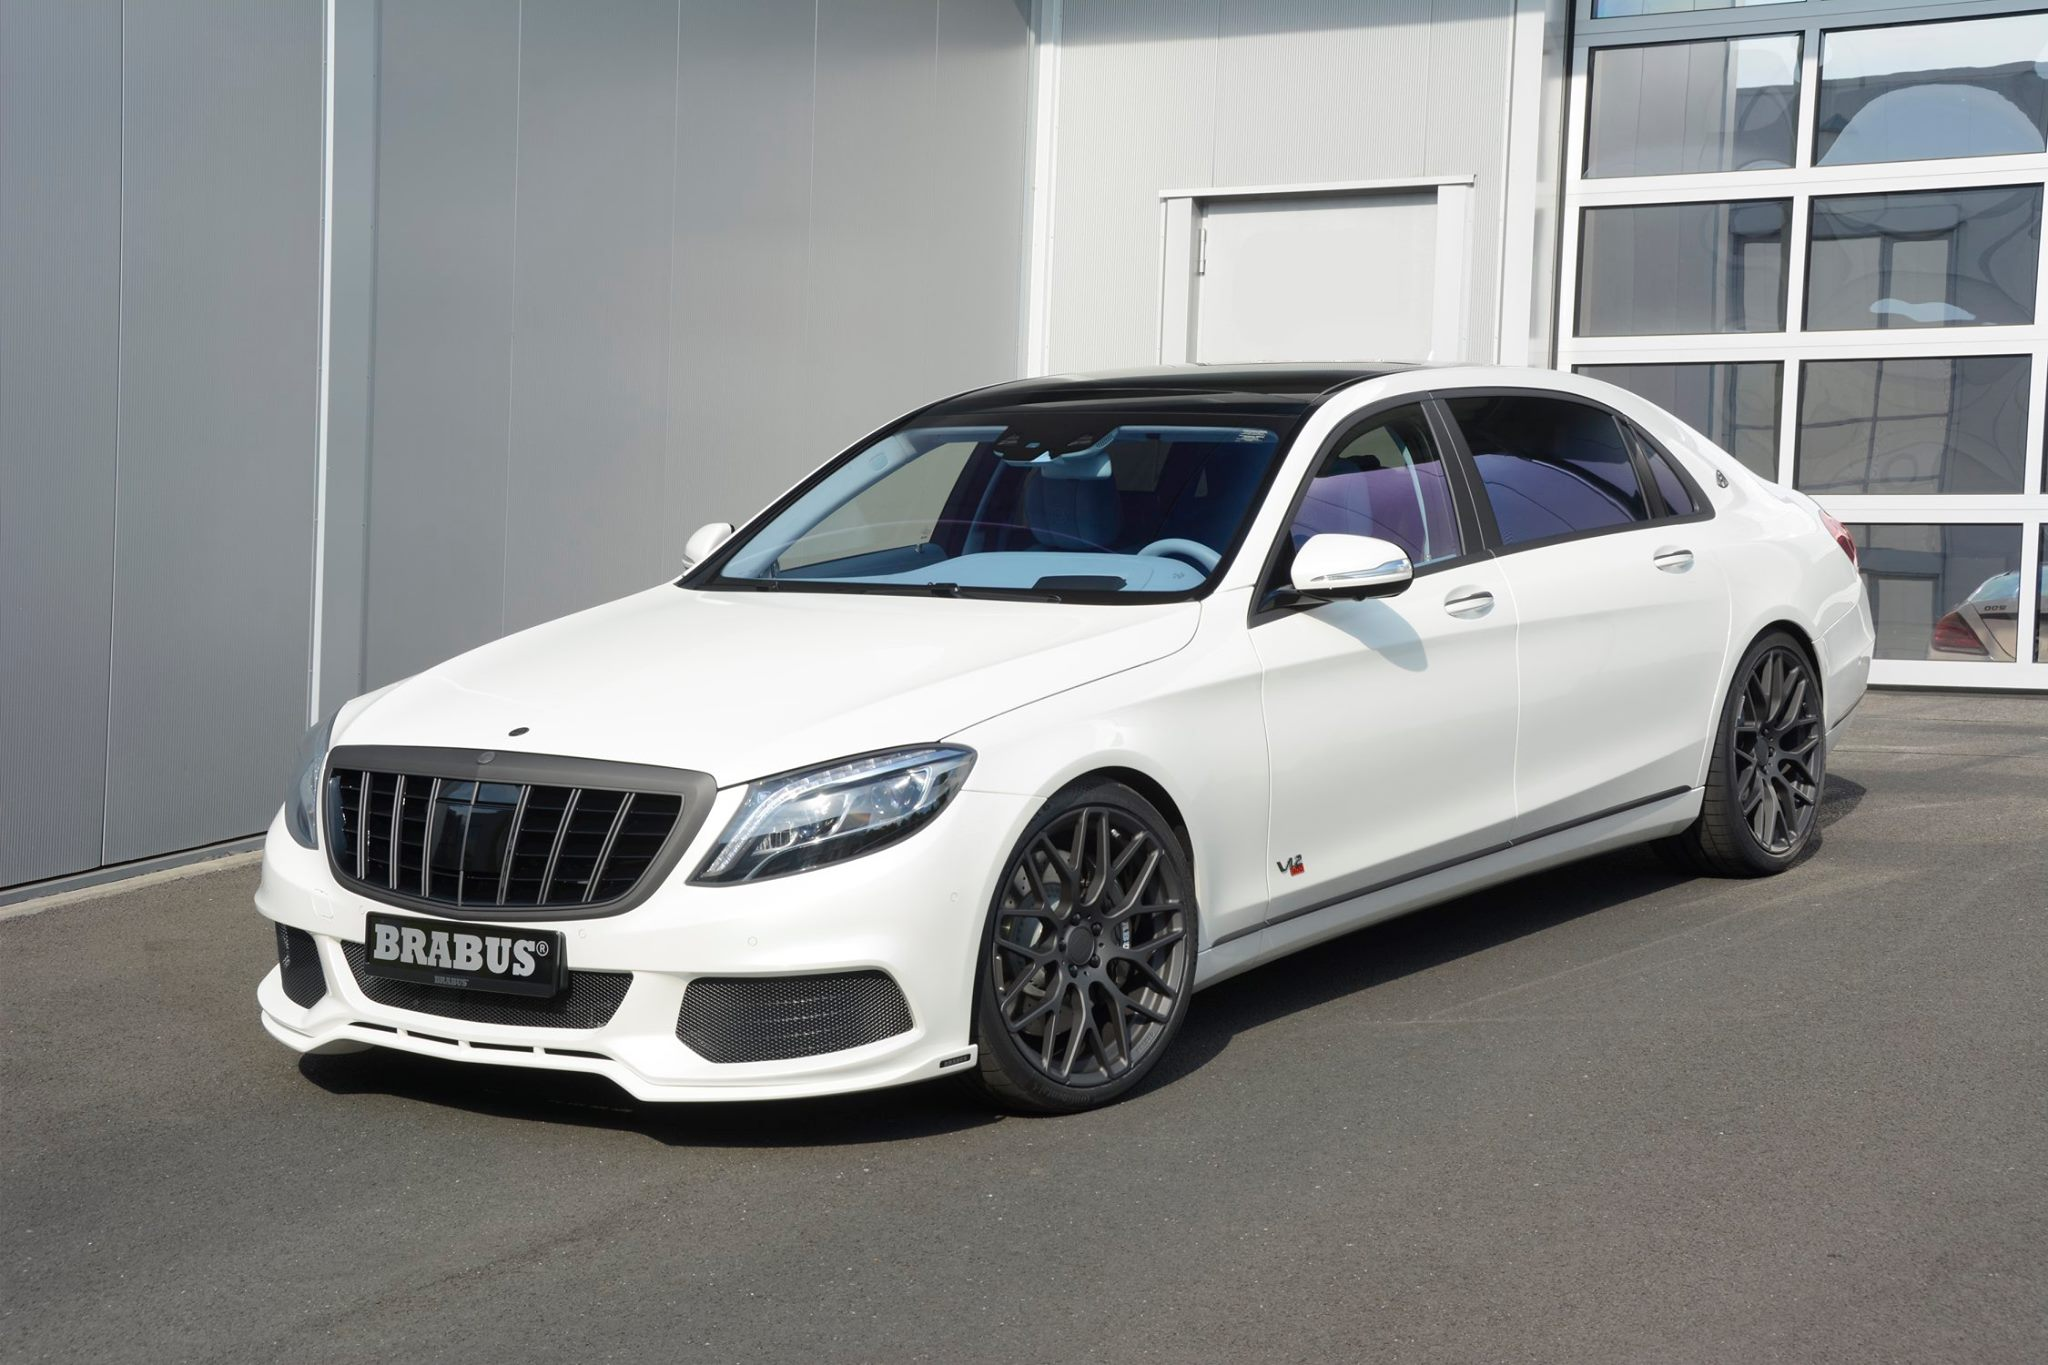 Maybach S600 Turns into Brabus Rocket 900 With Blue ...